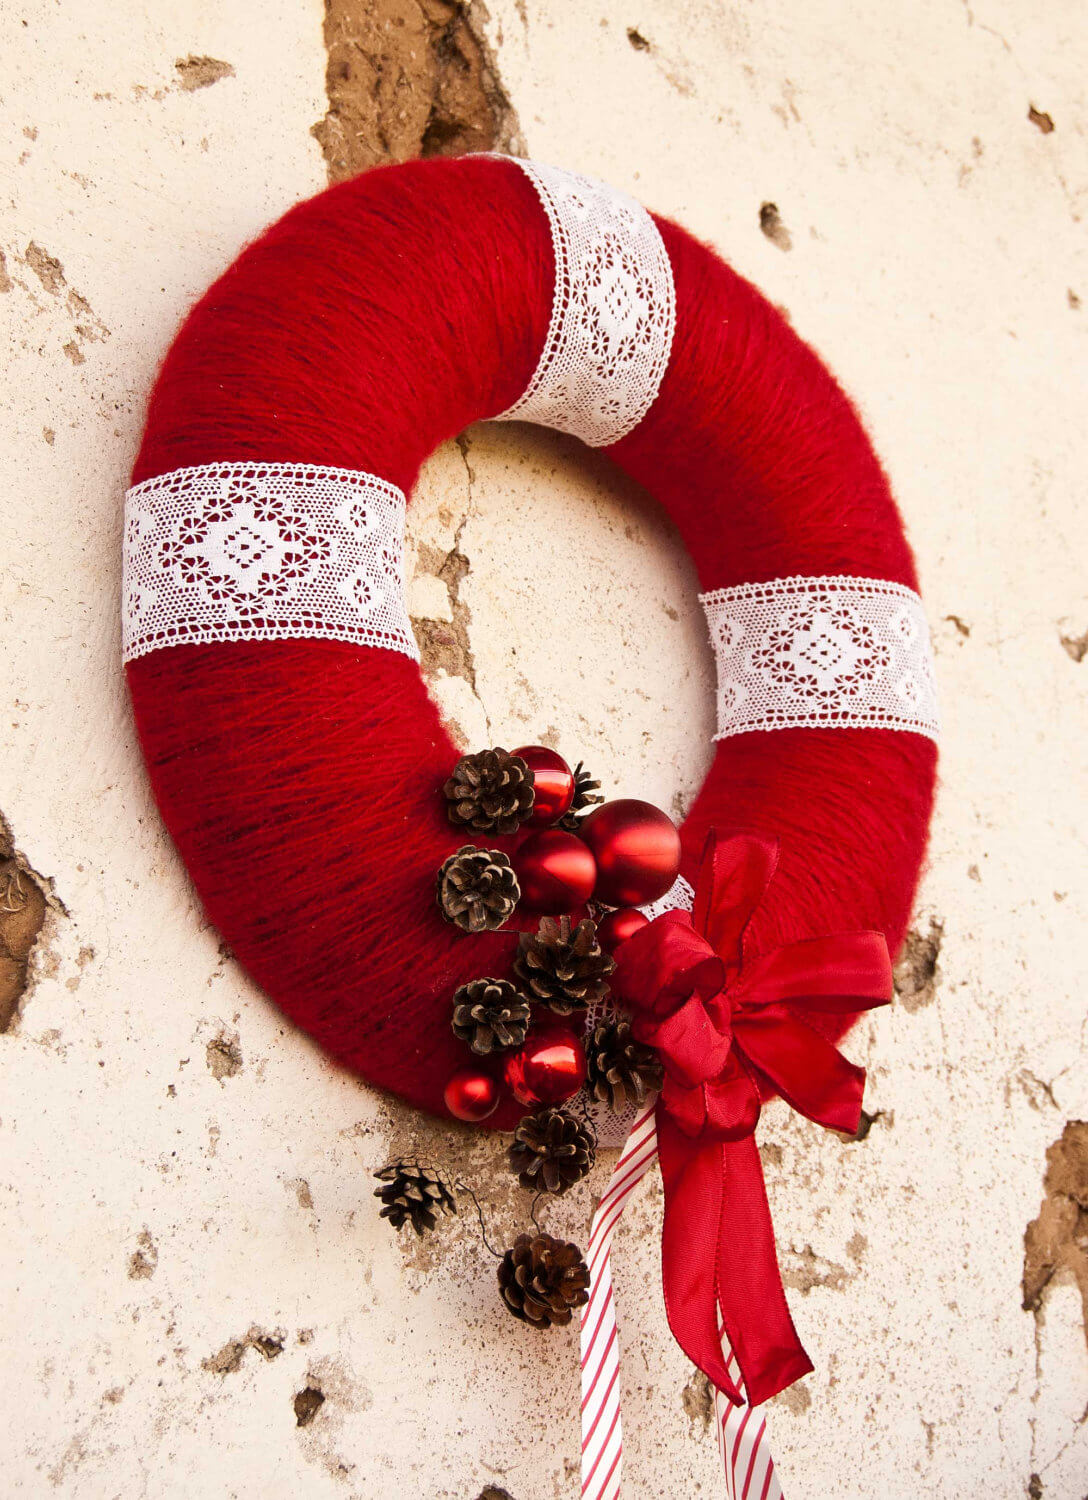 Unexpected Yarn and Lace Yuletide Accent